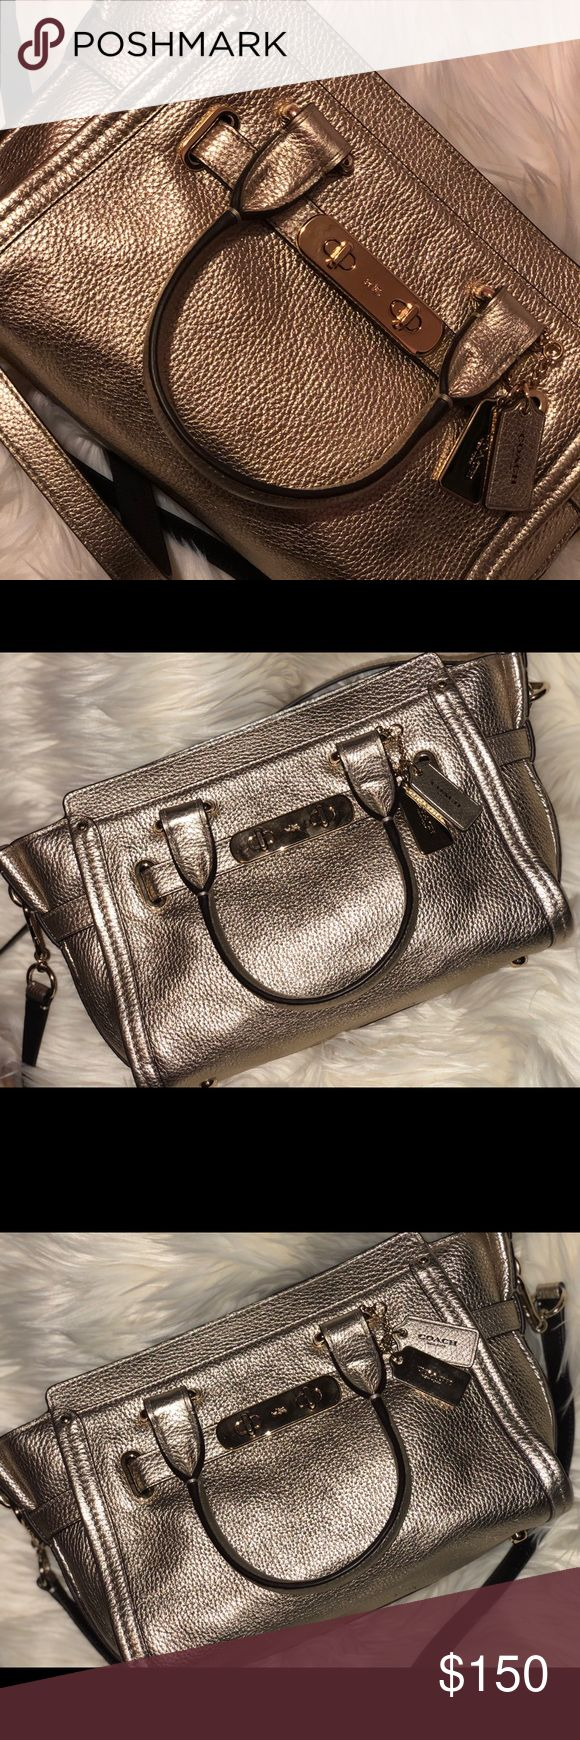 ❗️100% AUTHENTIC RETAIL SWAGGER COACH BAG❗️ This bag is carried in a platinum color, which is golden but soooooooooo beautiful. It is pebble leather, so it is soft but still holds a shape and comes with a crossbody attachment that matches. The metal on the bag has not faded and shows VERY VERY minor scratches. Not noticeable. The leather itself is in great condition except for one spot under which is shown in picture. Not noticeable, also on very bottom of bag. Pockets. Inside and zipper…